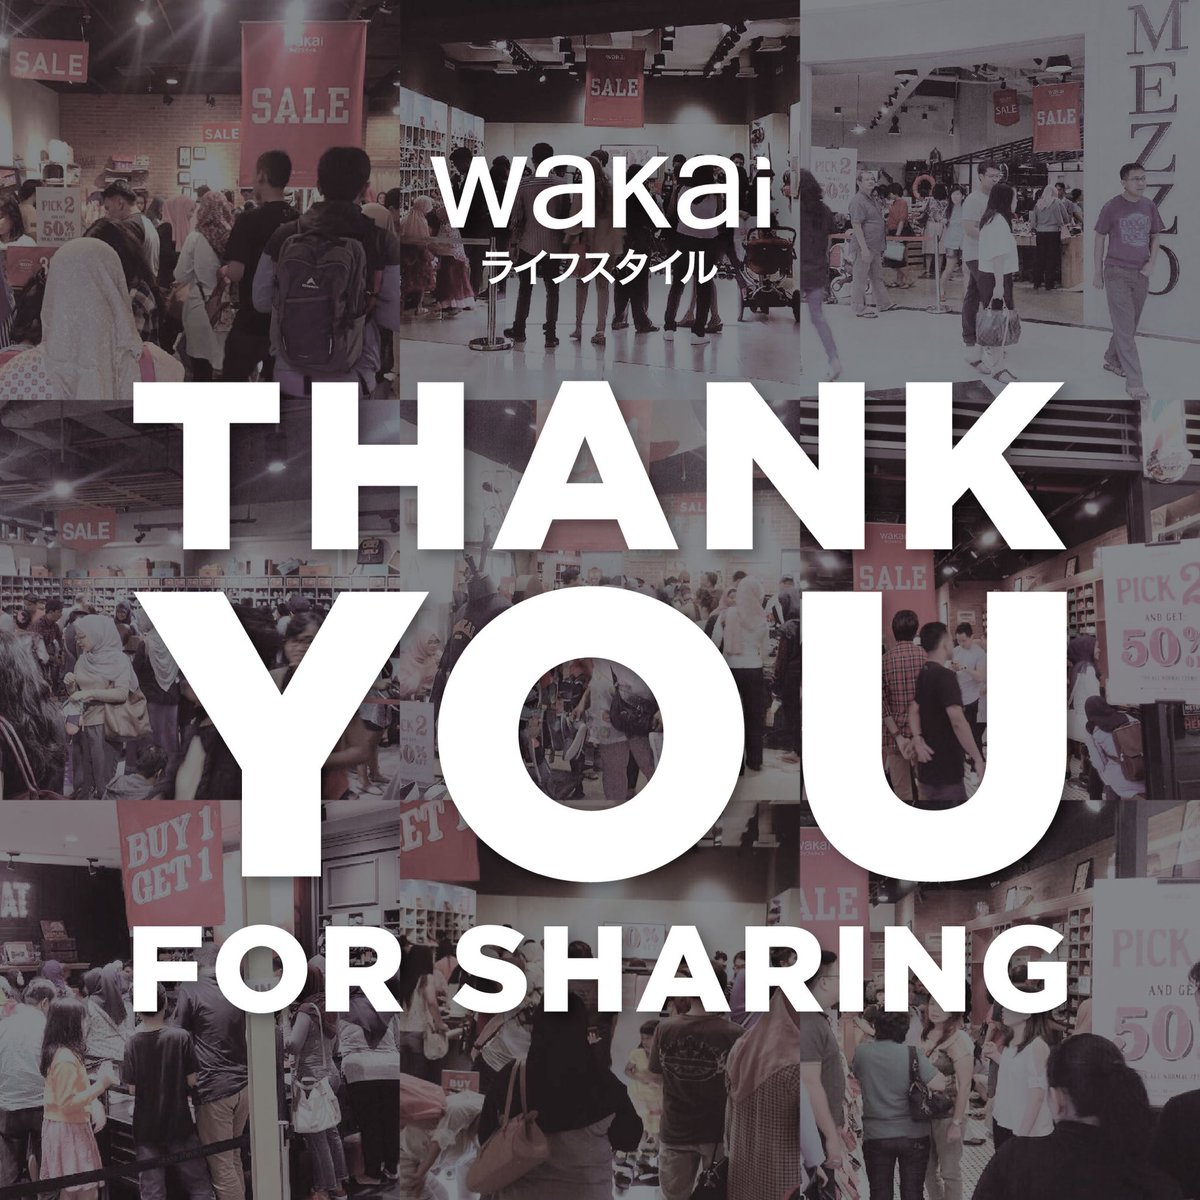 Wakai indonesia on twitter thank you for the unexpected enthusiasm wakai indonesia on twitter thank you for the unexpected enthusiasm warm greetings huge supports and a magnificent crowd kristyandbryce Images